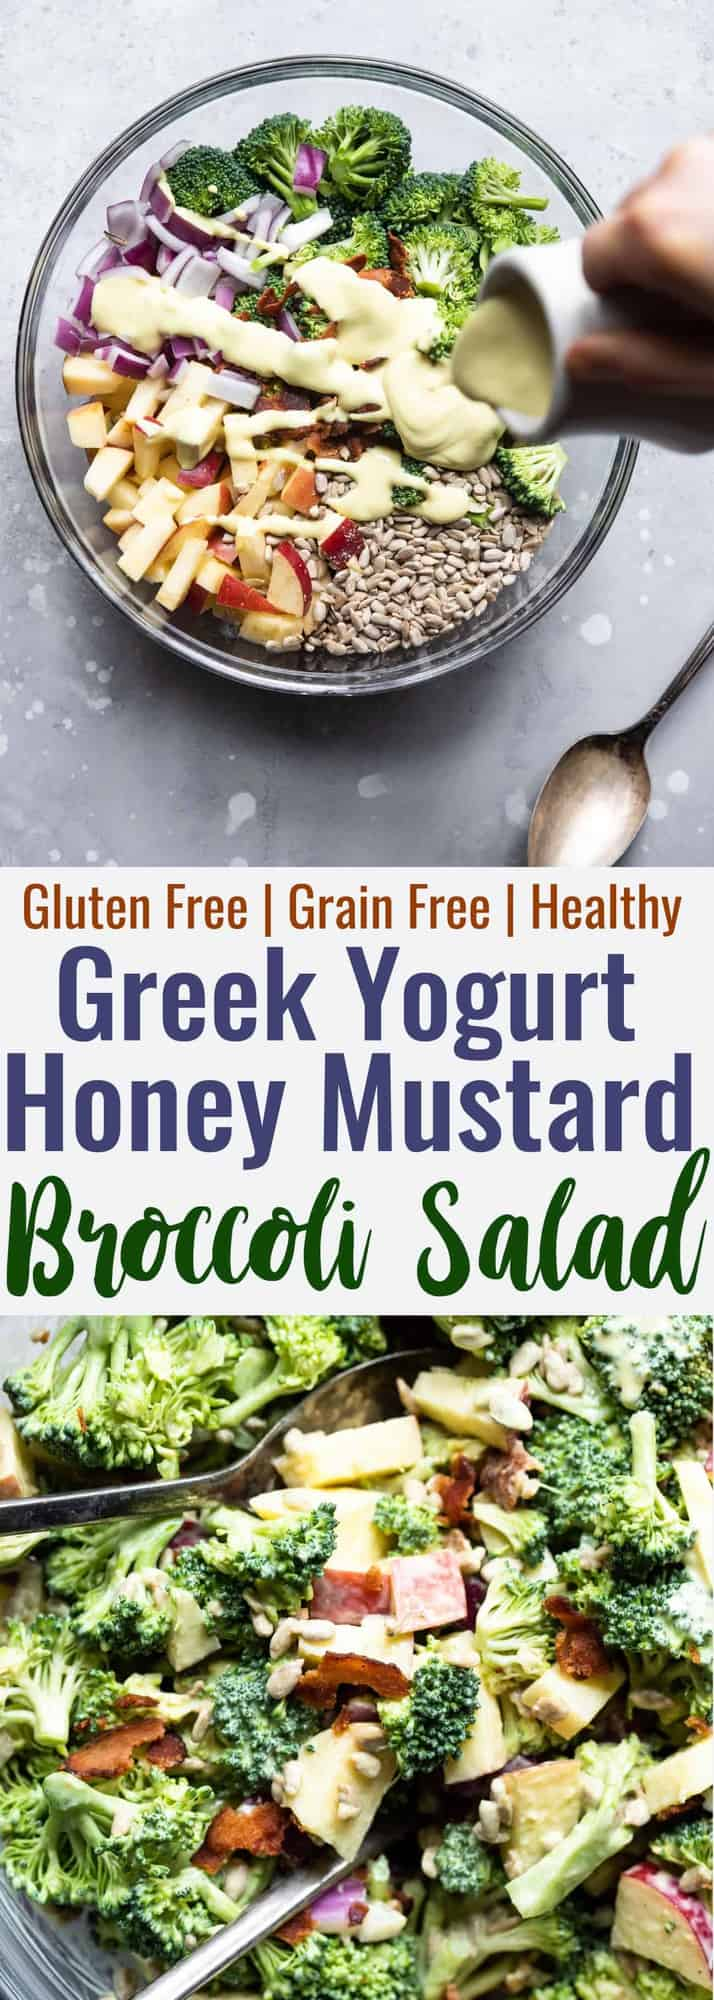 Honey Mustard Broccoli Apple Salad with Greek Yogurt  - An easy, gluten free and healthy side dish that even kids will like! It's protein packed and makes great leftovers! | #Foodfaithfitness | #Glutenfree #Grainfree #Healthy #GreekYogurt